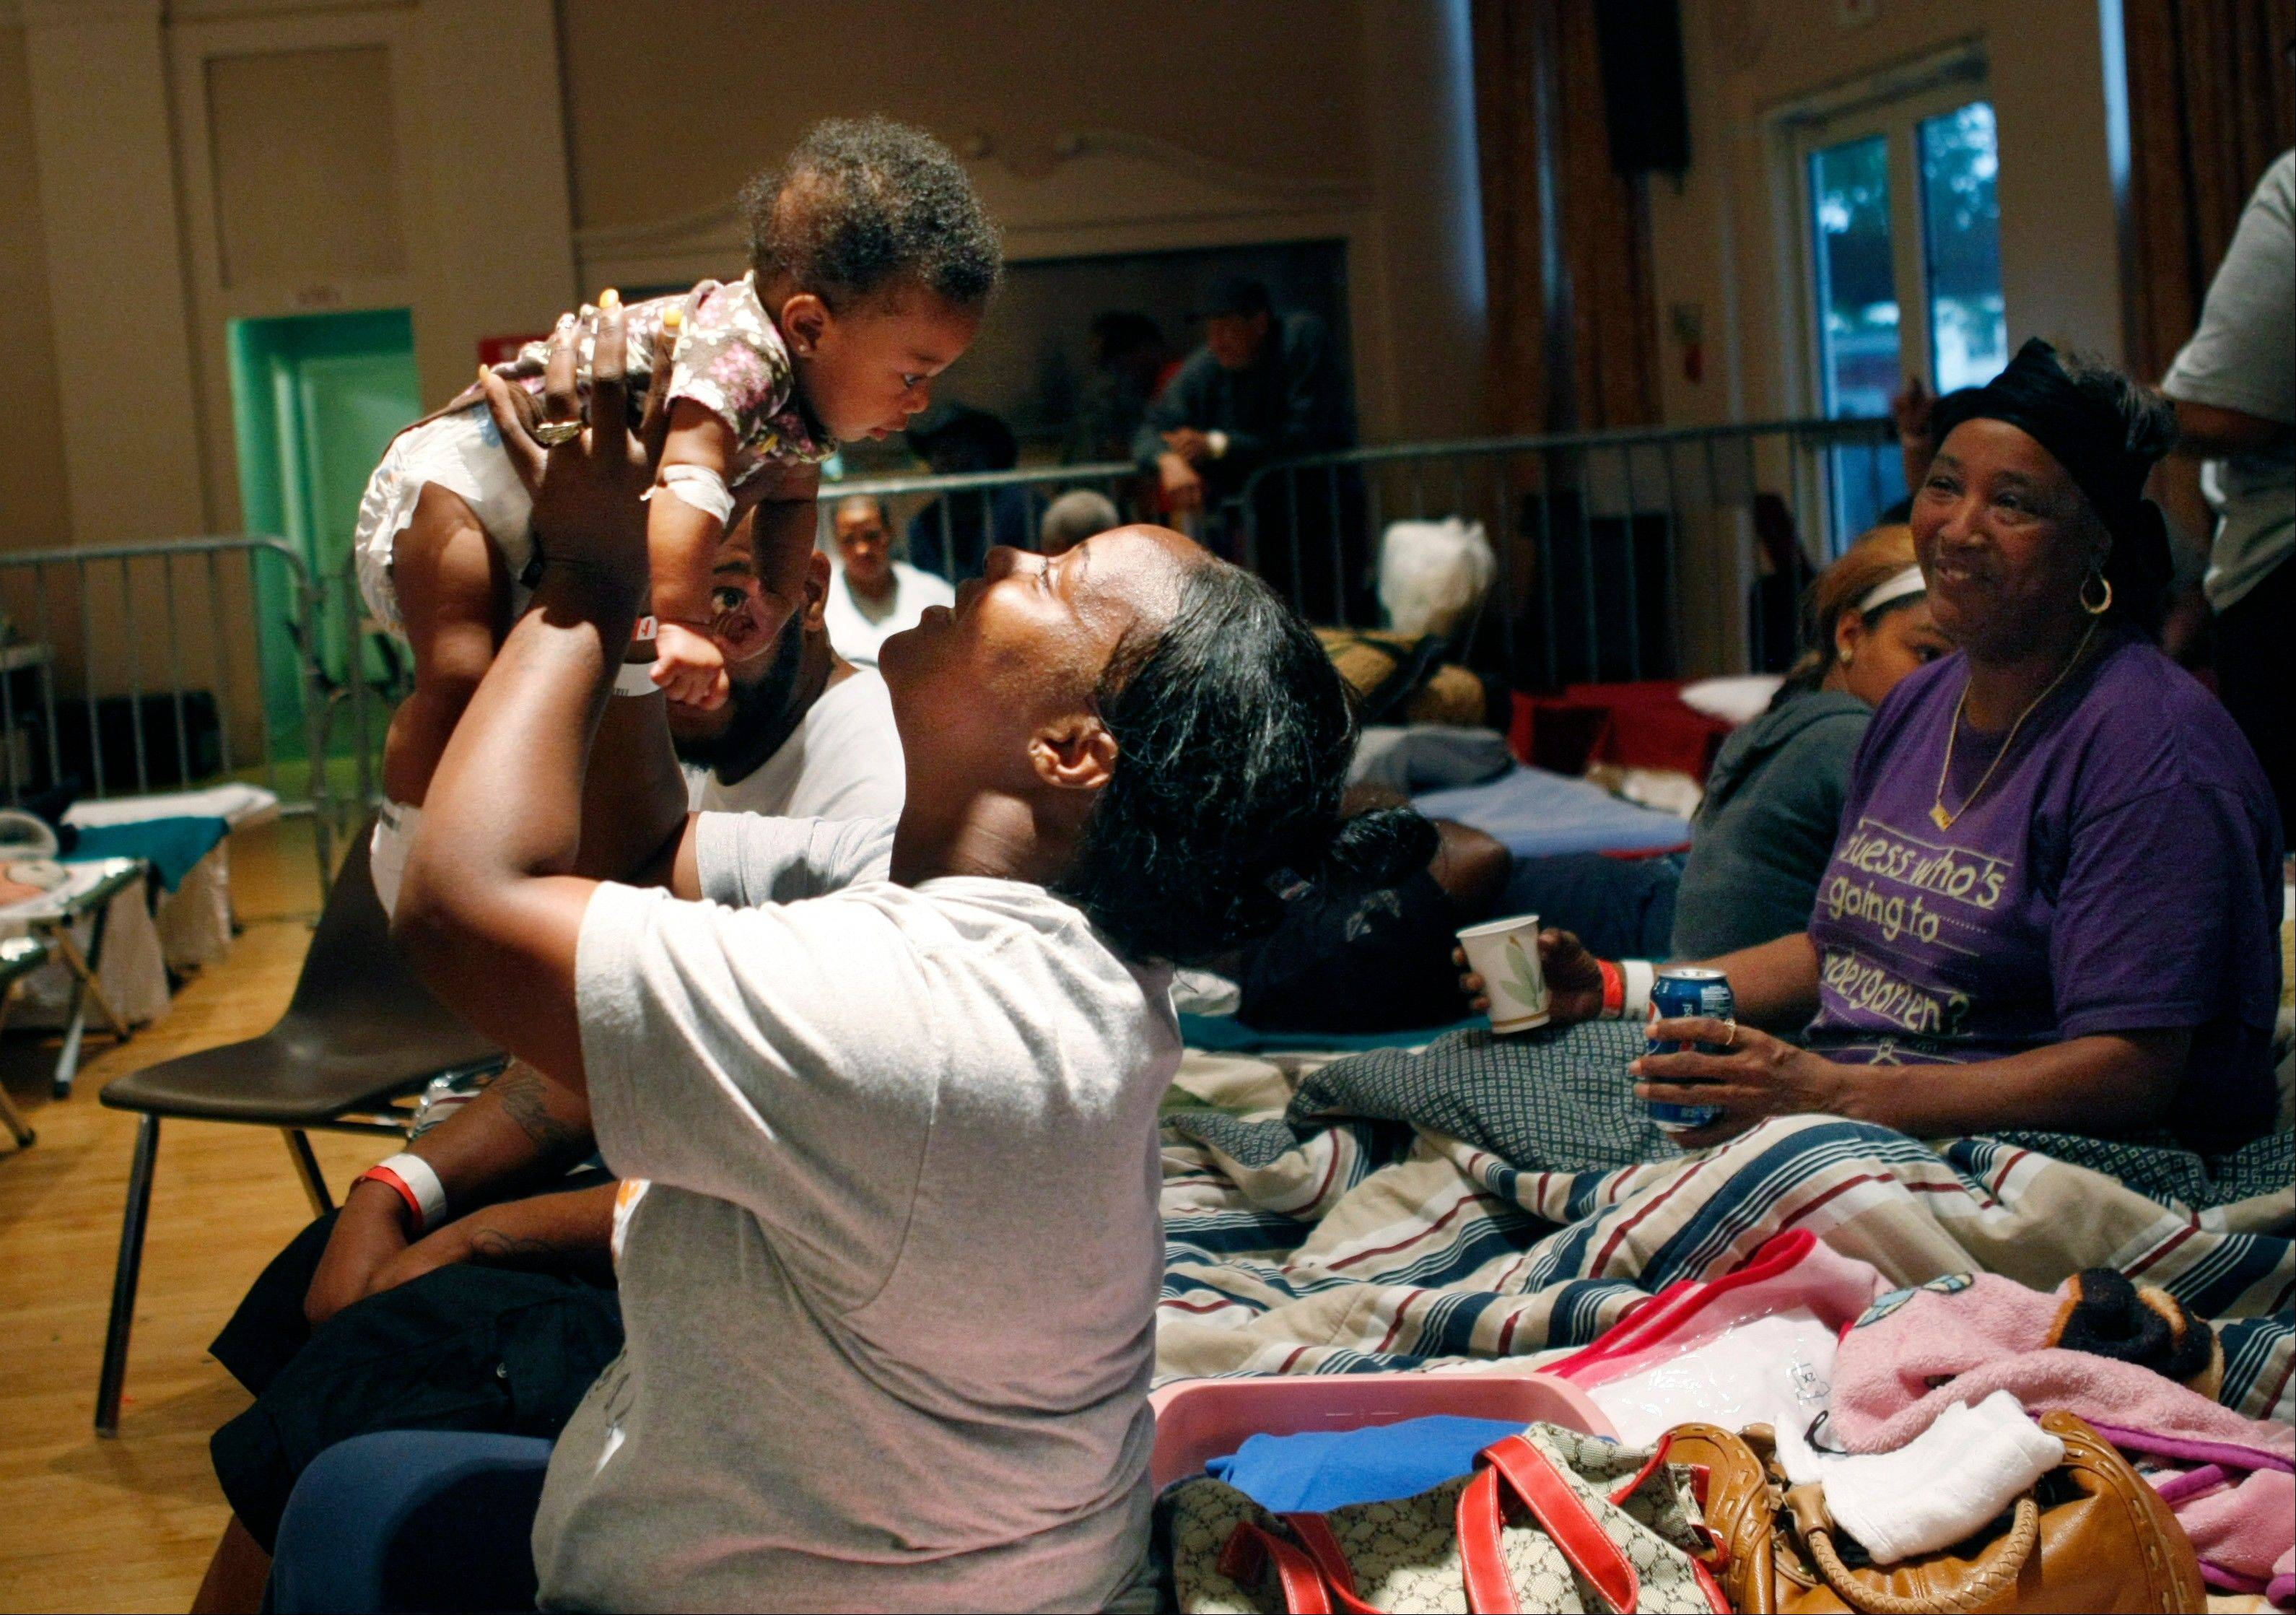 Toccara Williams, of Davant, La., holds her 5-month-old daughter Ra-Maaz Williams, at an evacuation shelter after Isaac made landfall as a Hurricane, in Belle Chasse, La., Wednesday, Aug. 29, 2012.